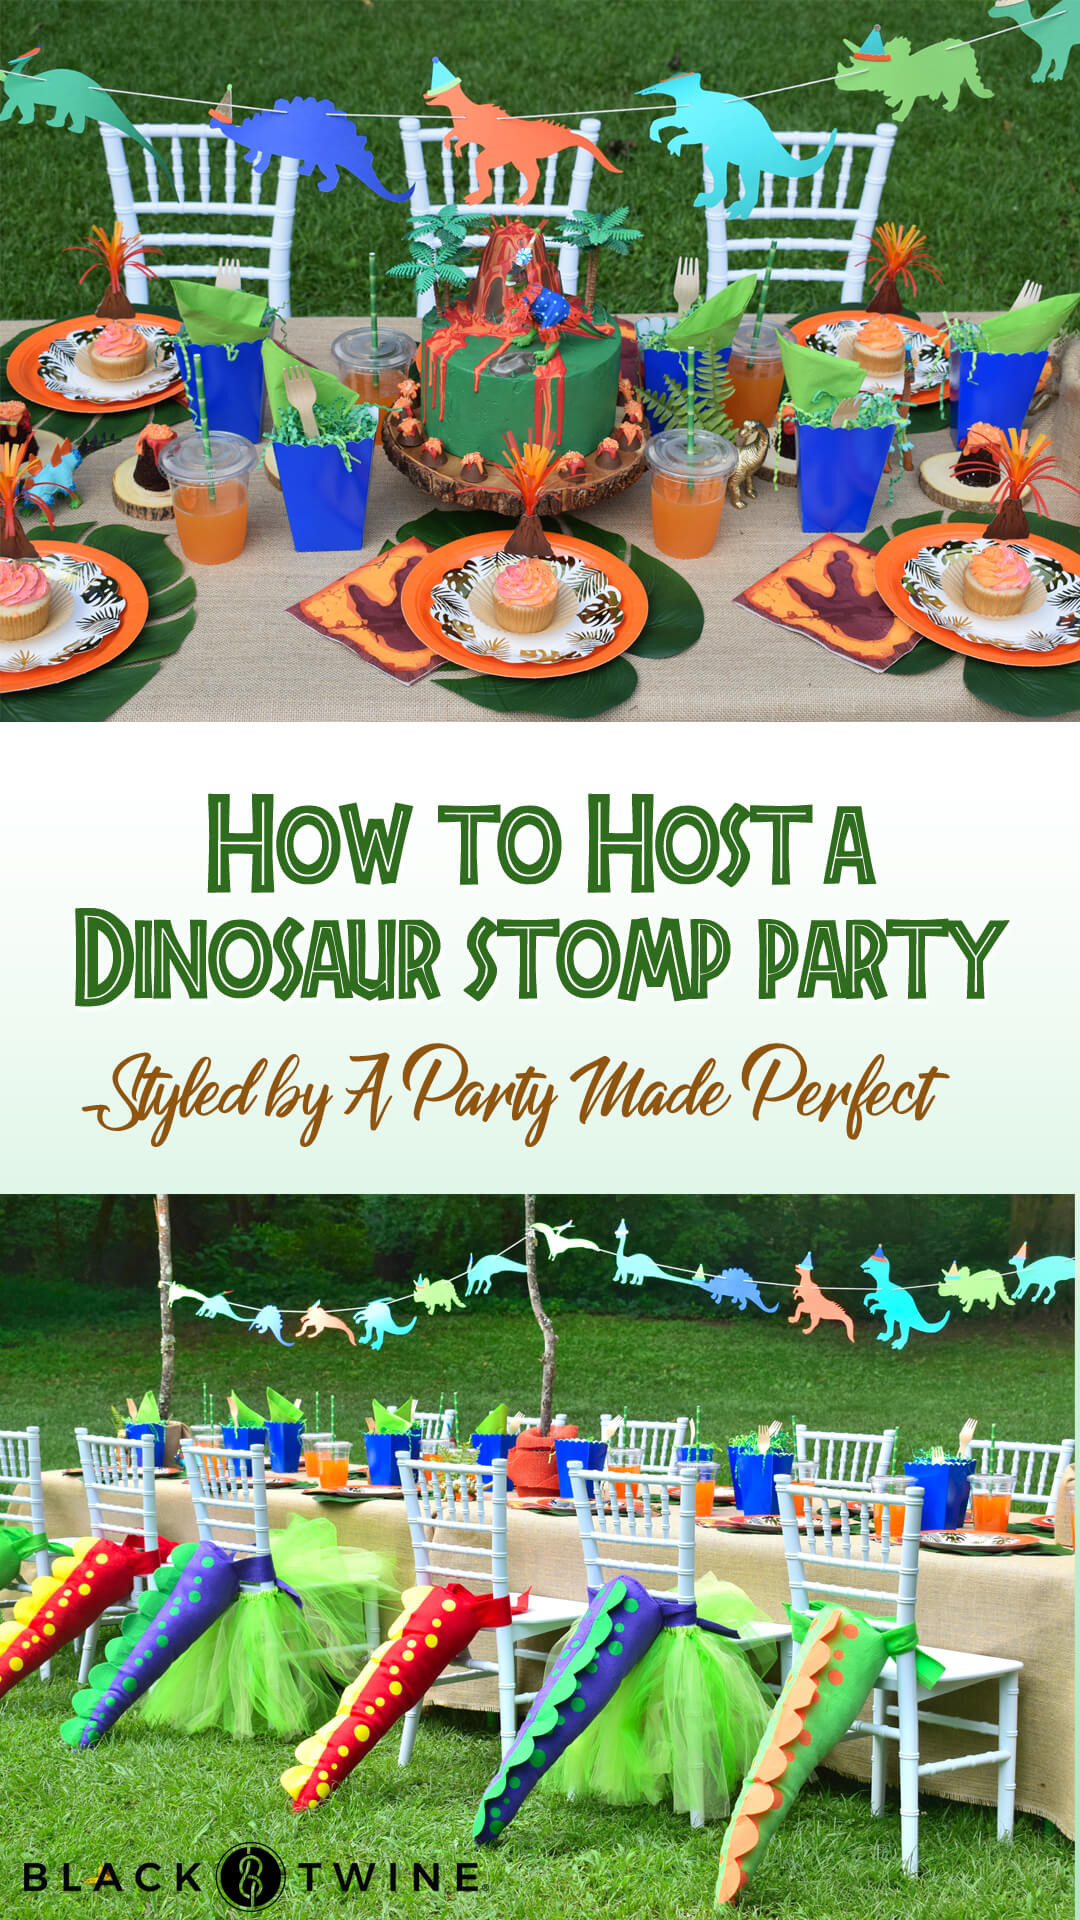 How to Host a Dinosaur Stomp Birthday Party from Dinosaur Stomp Birthday Party styled by A Party Made Perfect | Black Twine